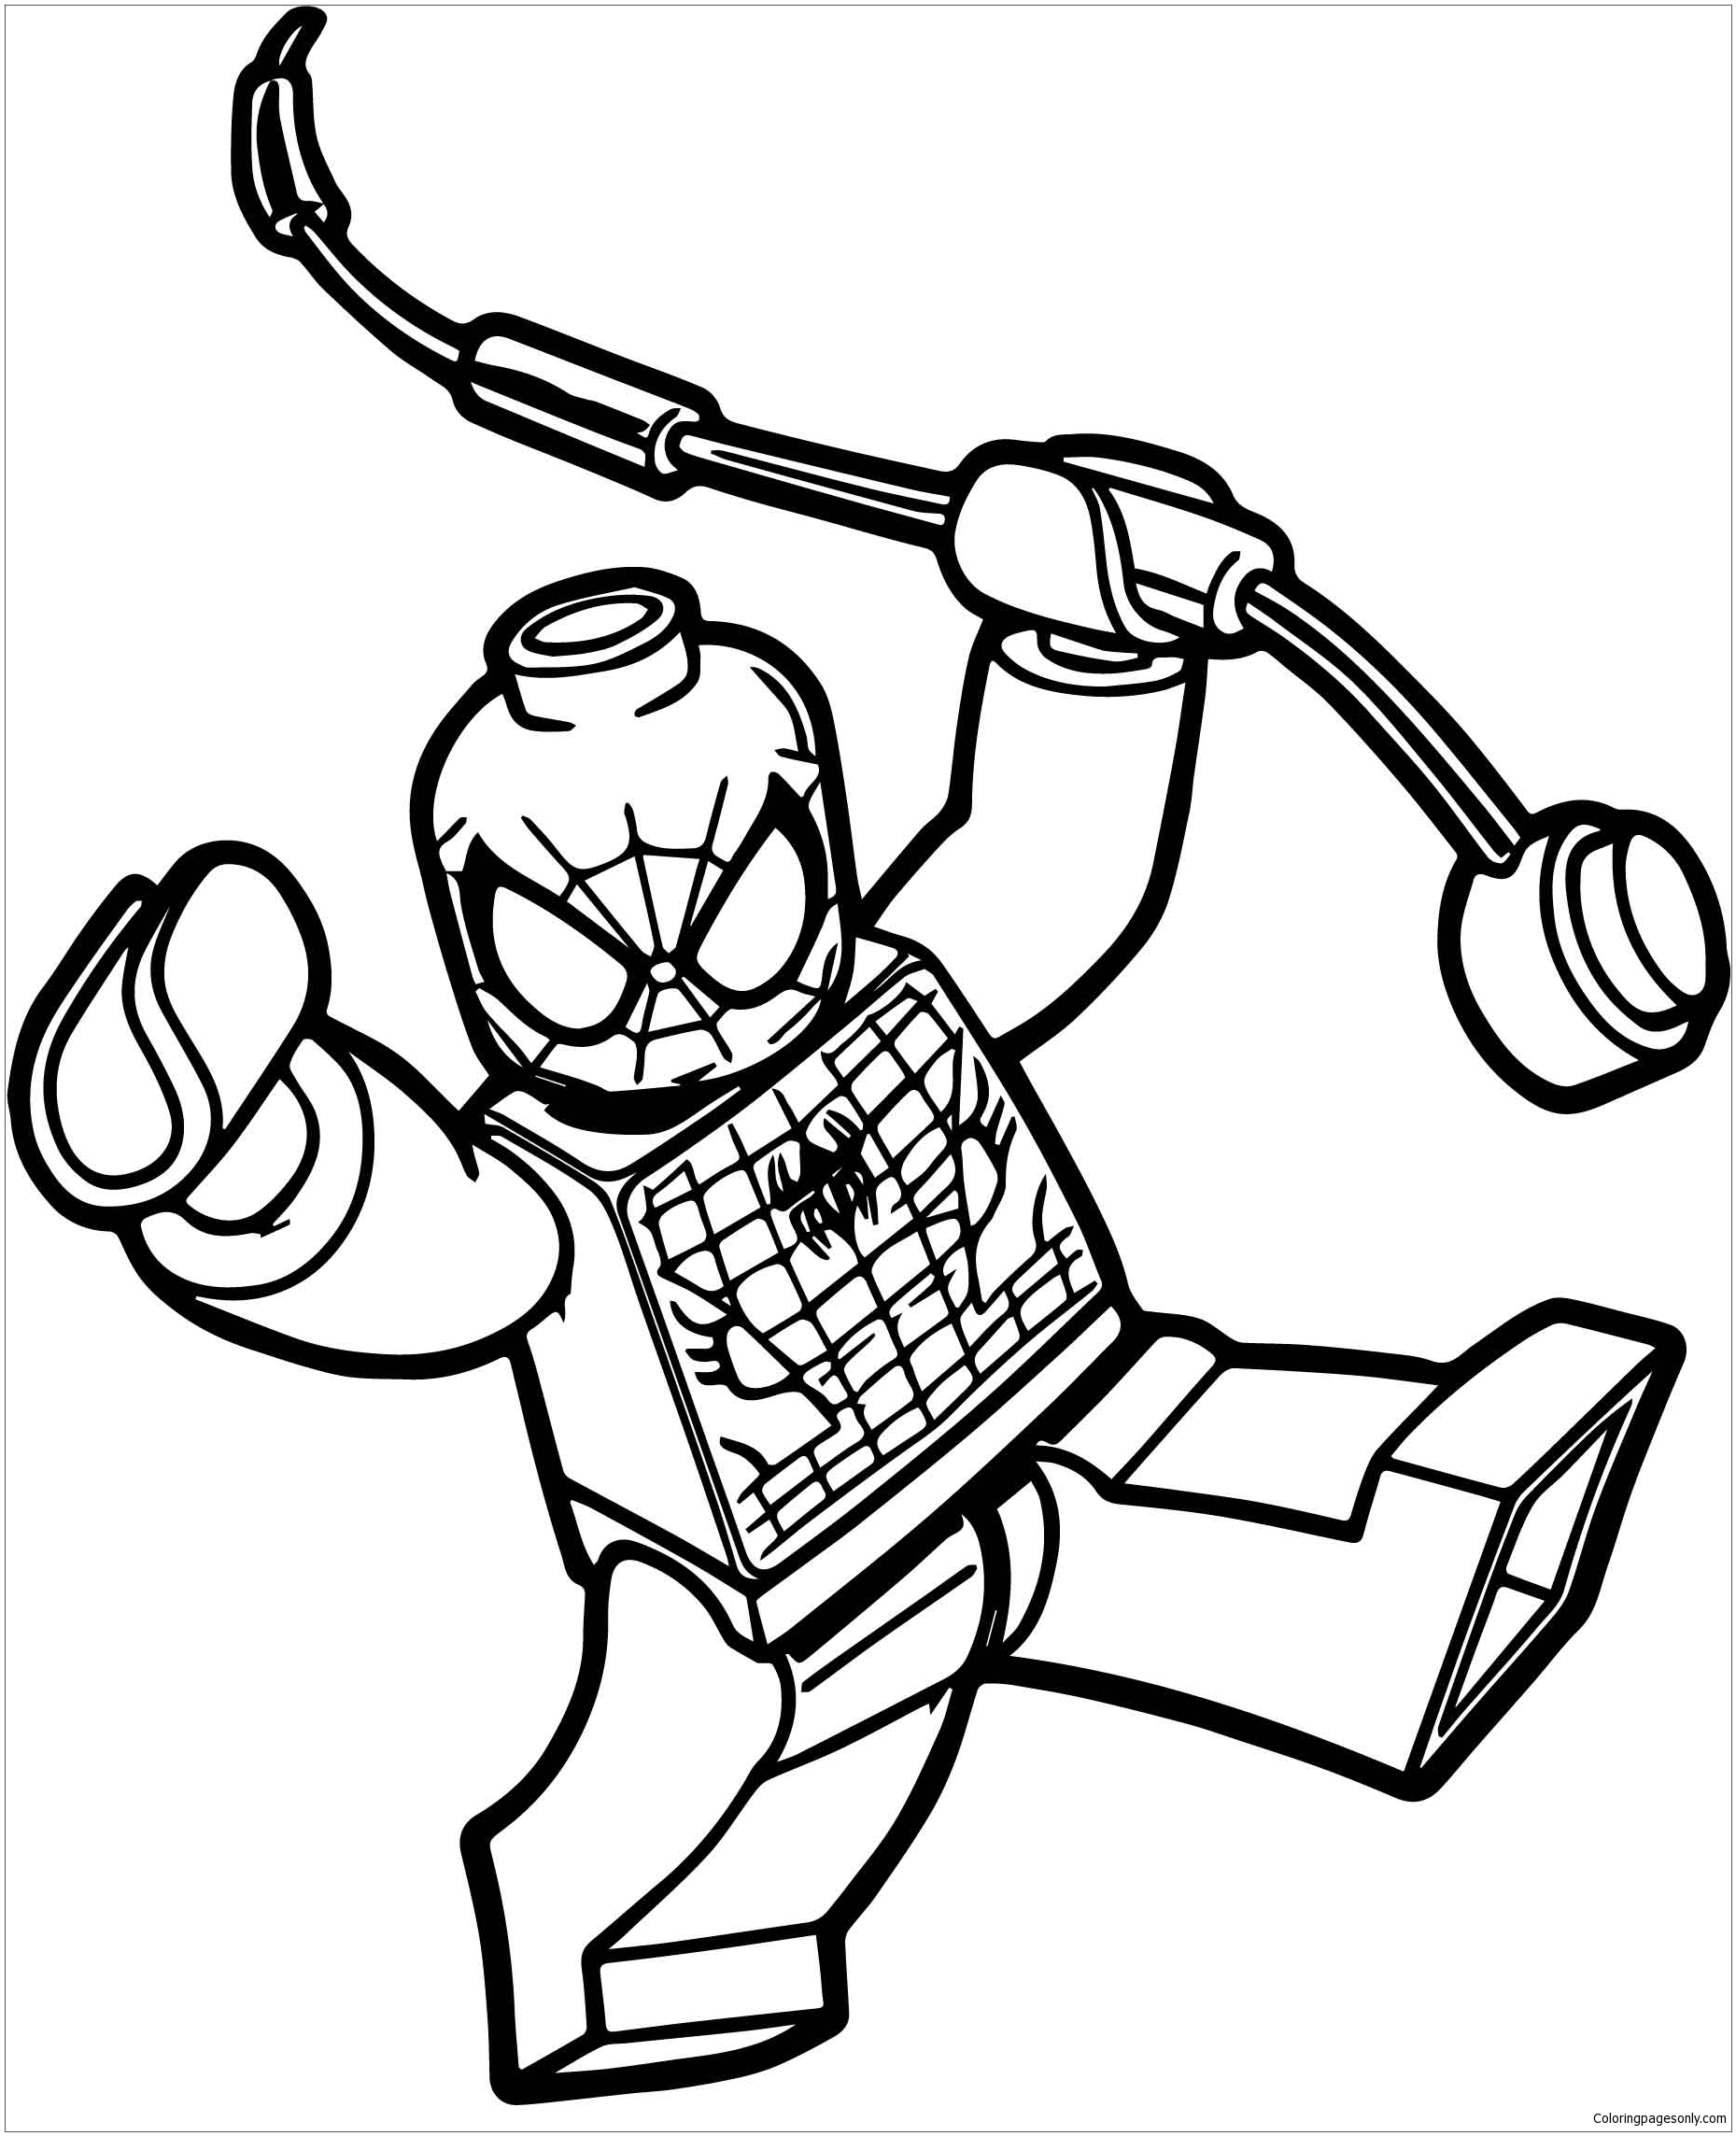 Box Spiderman Lego Spider Man Coloring Page Free Coloring Pages